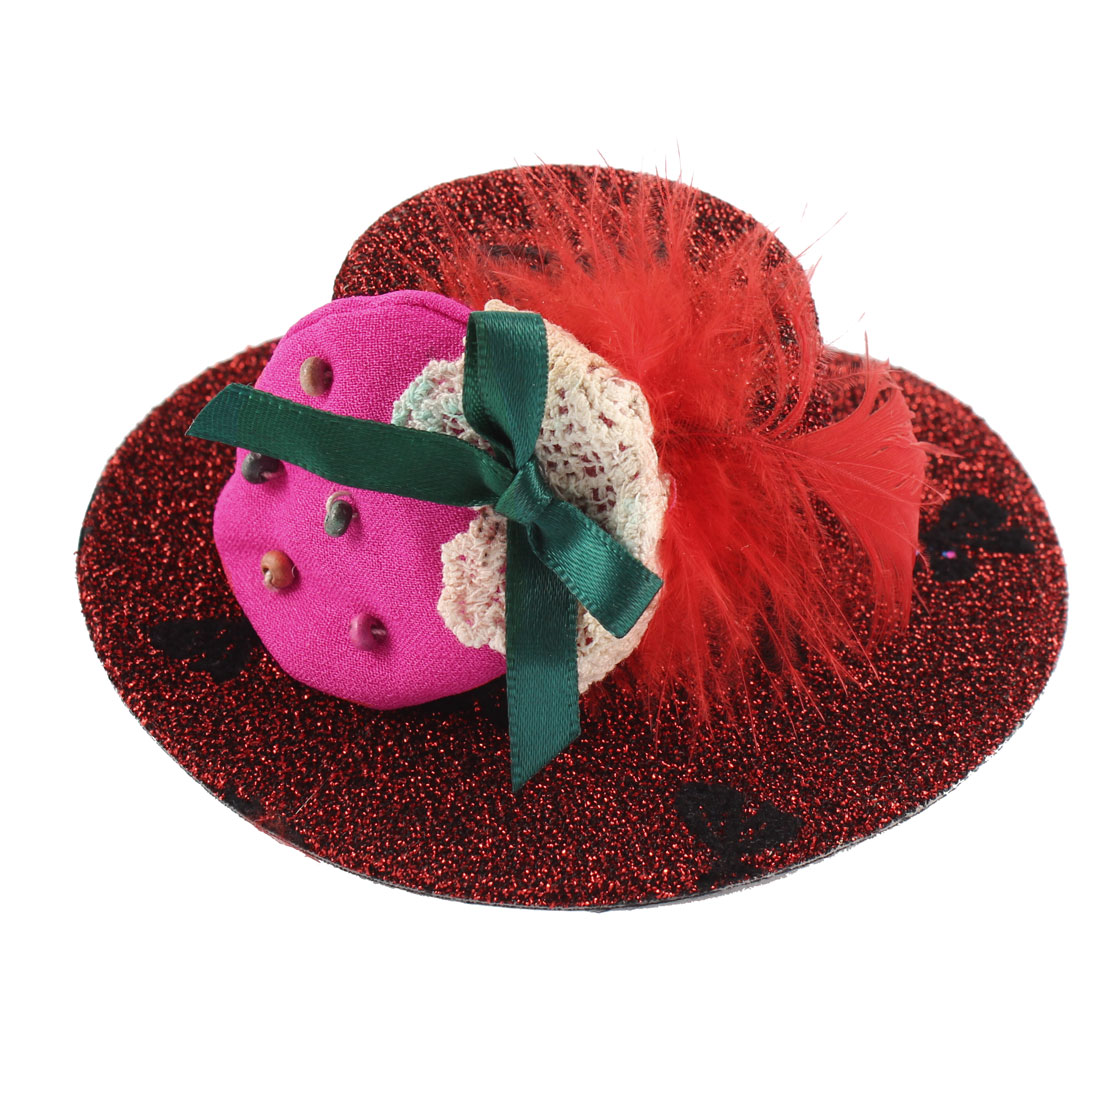 Lady Bowknot Print Fuchsia Strawberry Detail Glittery Tinsel Coated Top Hat Hairclip Red